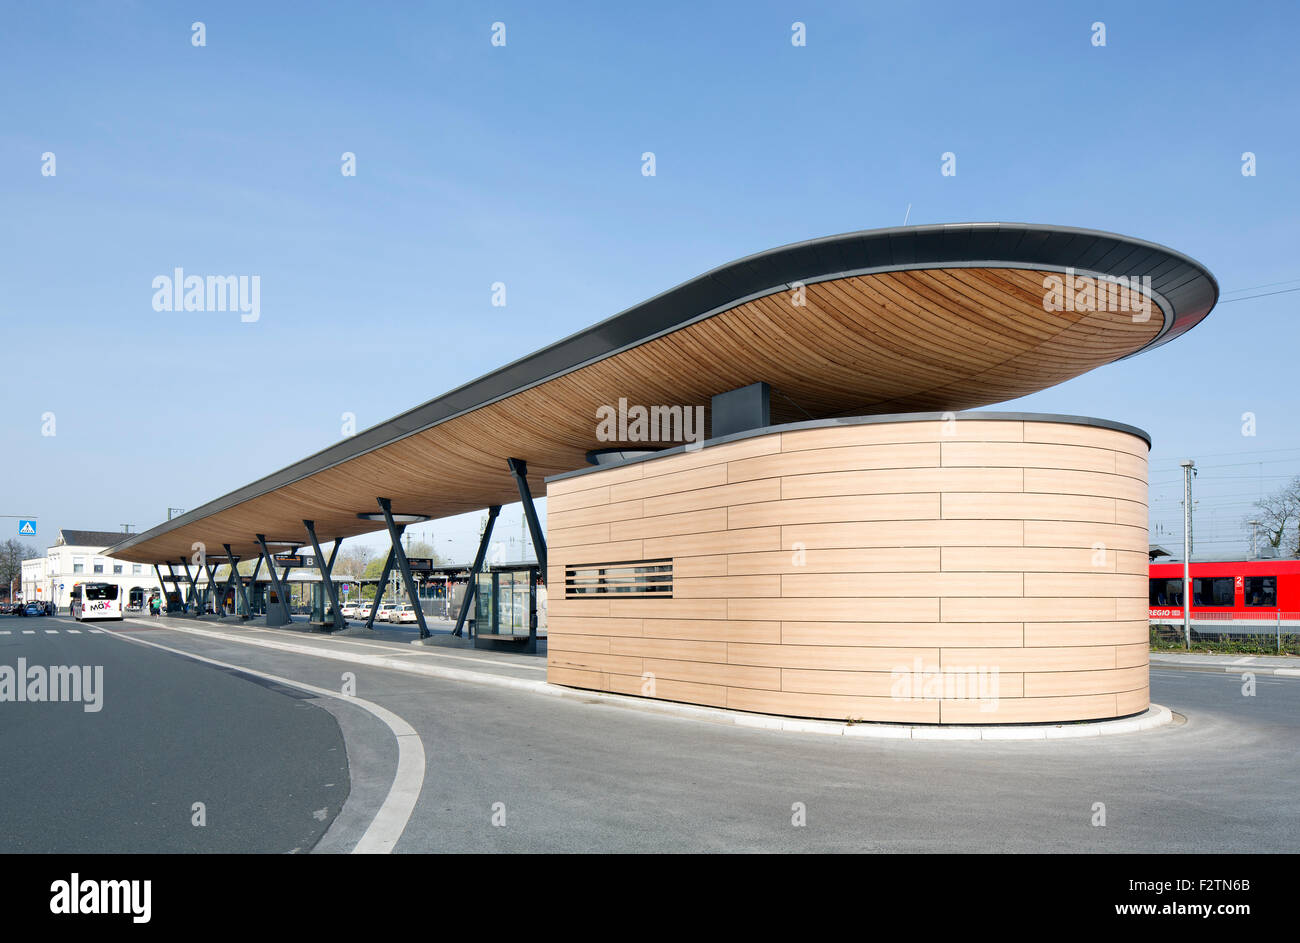 Central bus station at the train station, Unna, Ruhr district, Westphalia, North Rhine-Westphalia, Germany - Stock Image